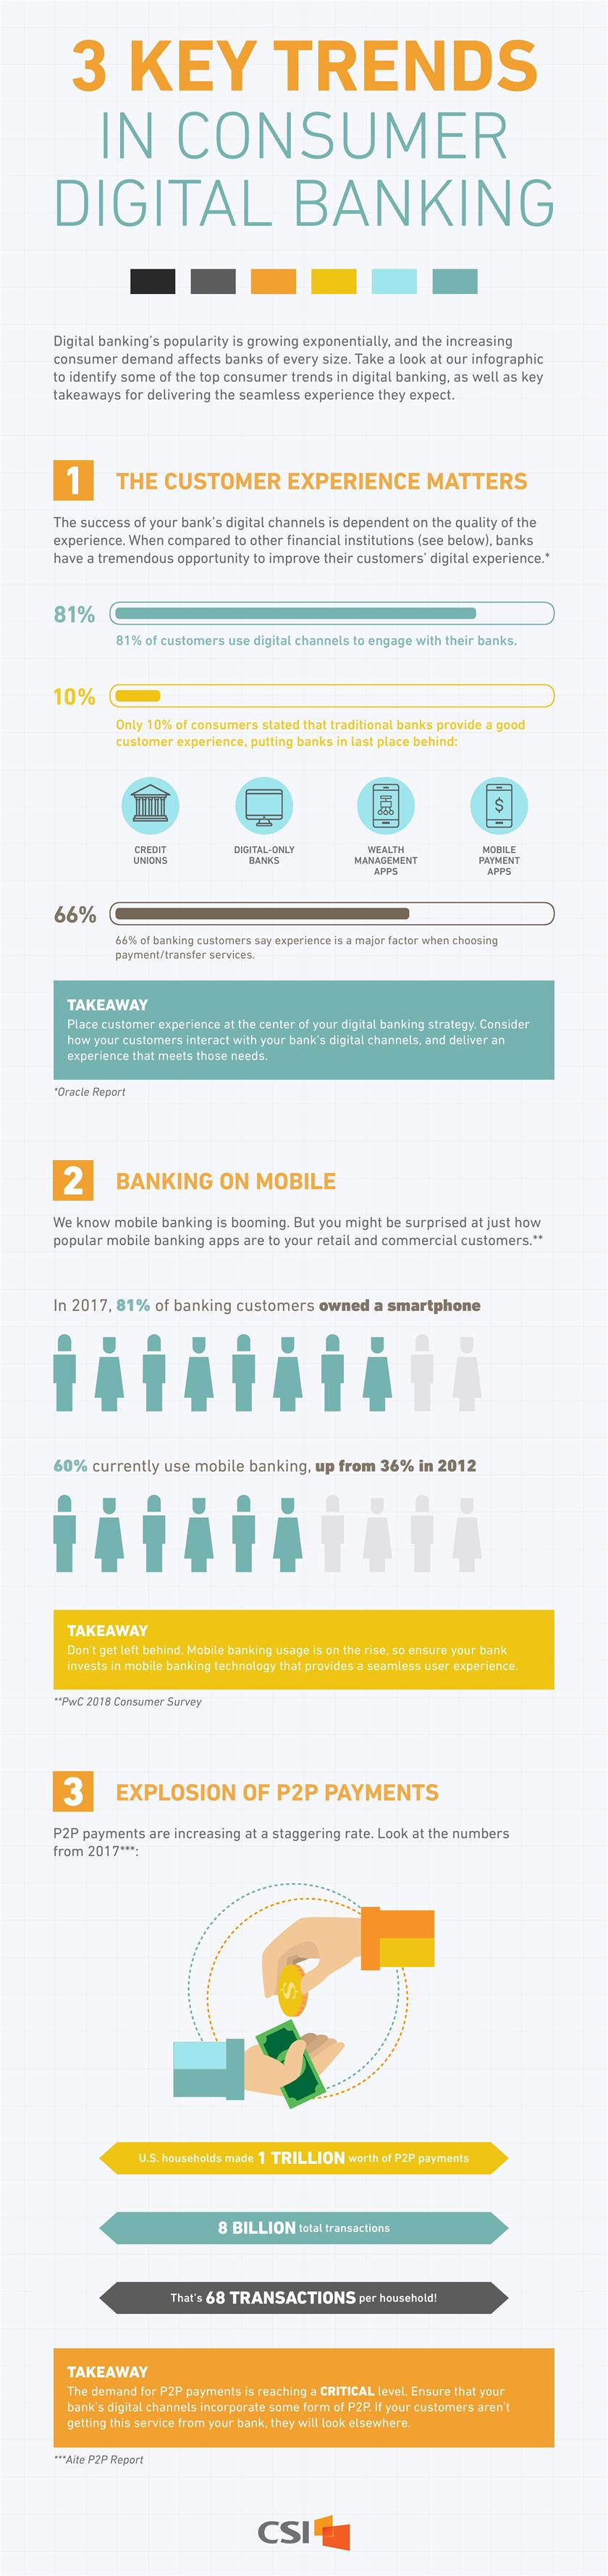 Infographic: 3 Key Trends in Consumer Digital Banking